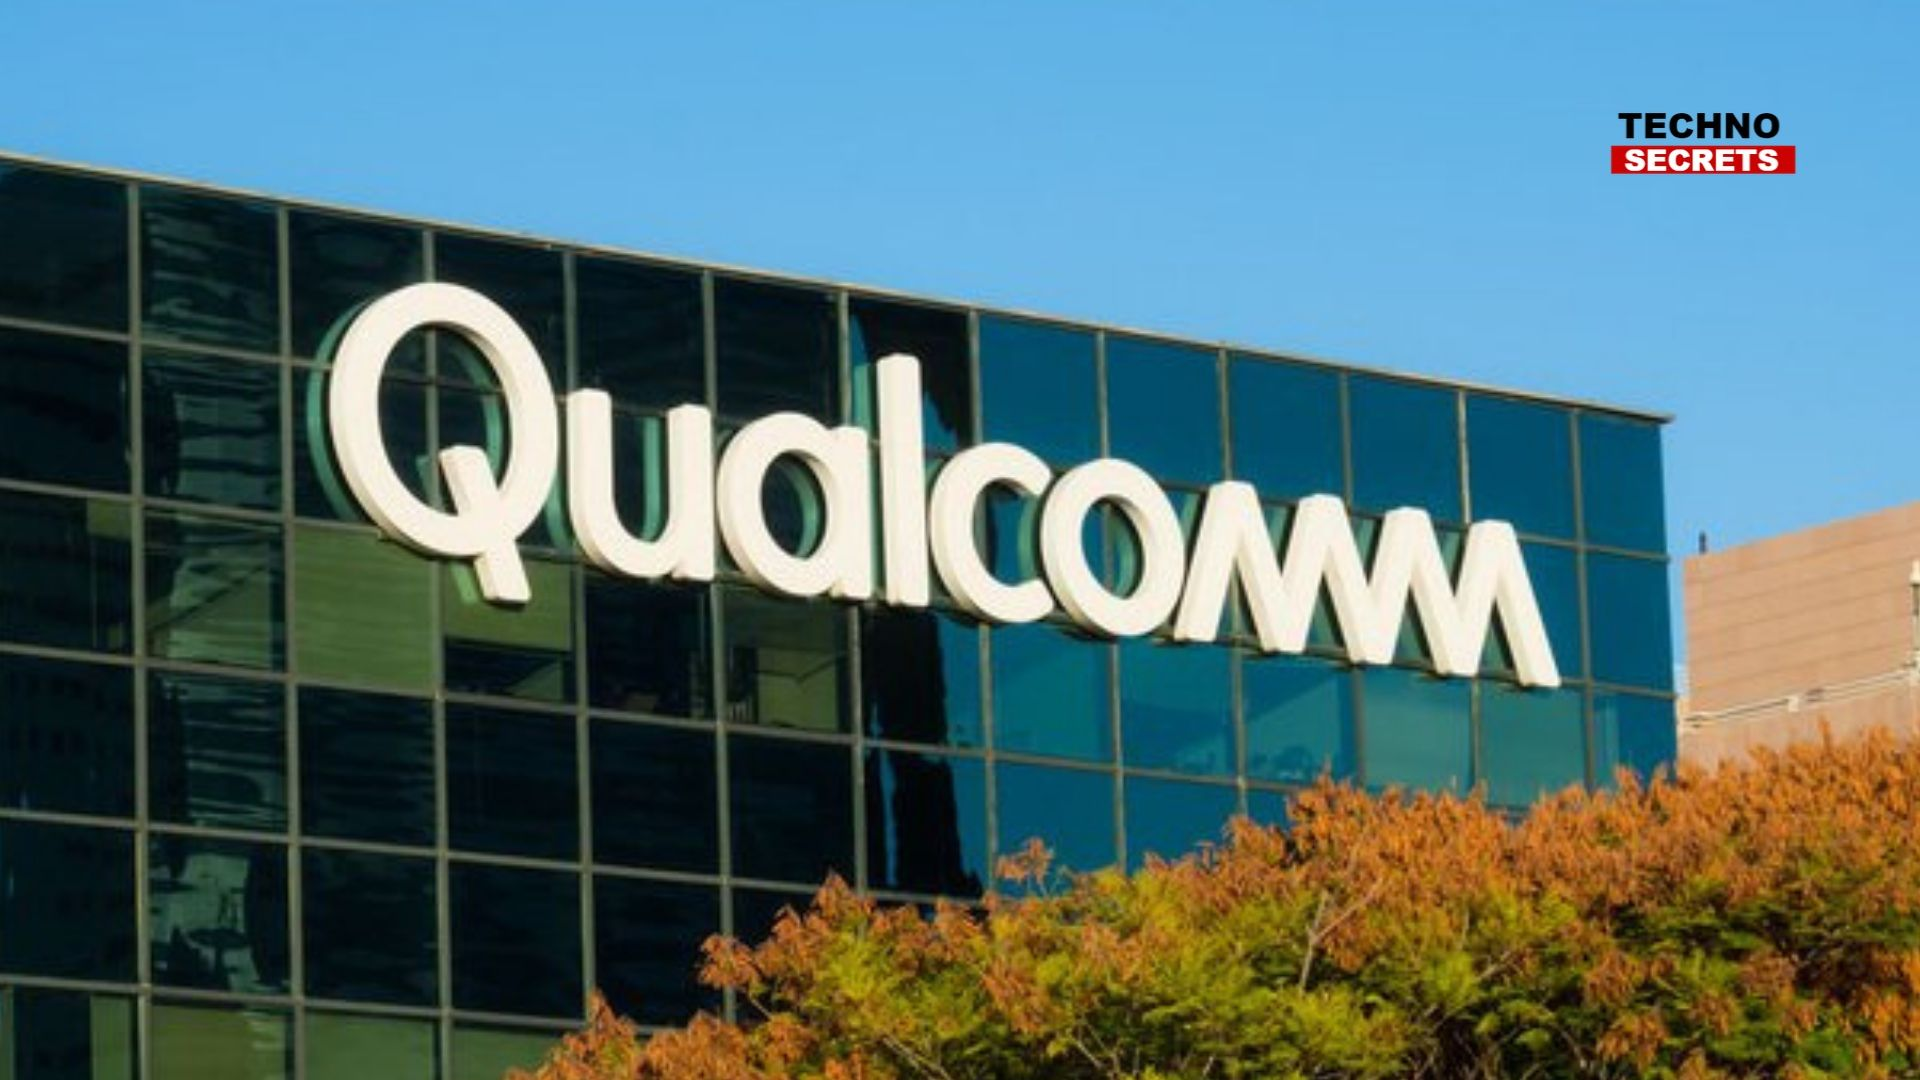 Qualcomm Announces Plans For Its 5G Chips in 2020